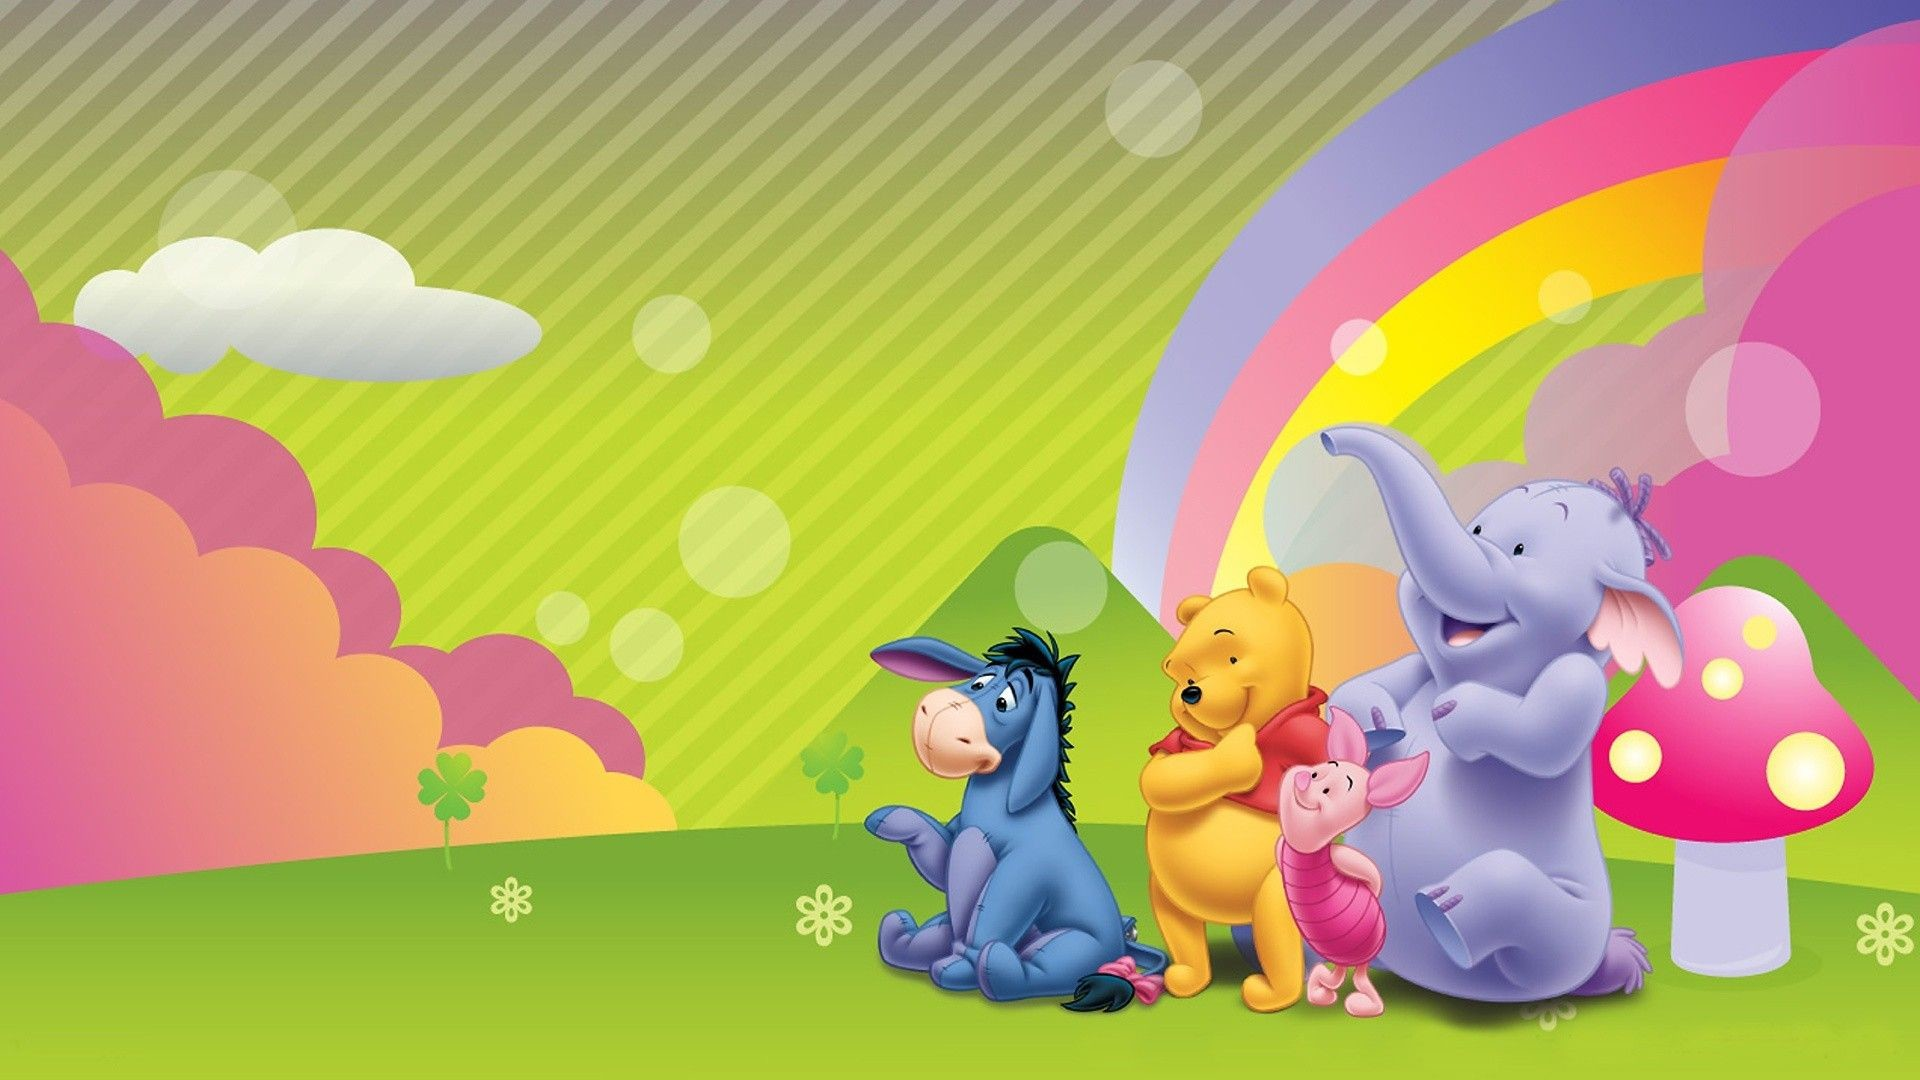 Barney and Friends Wallpaper 46 images